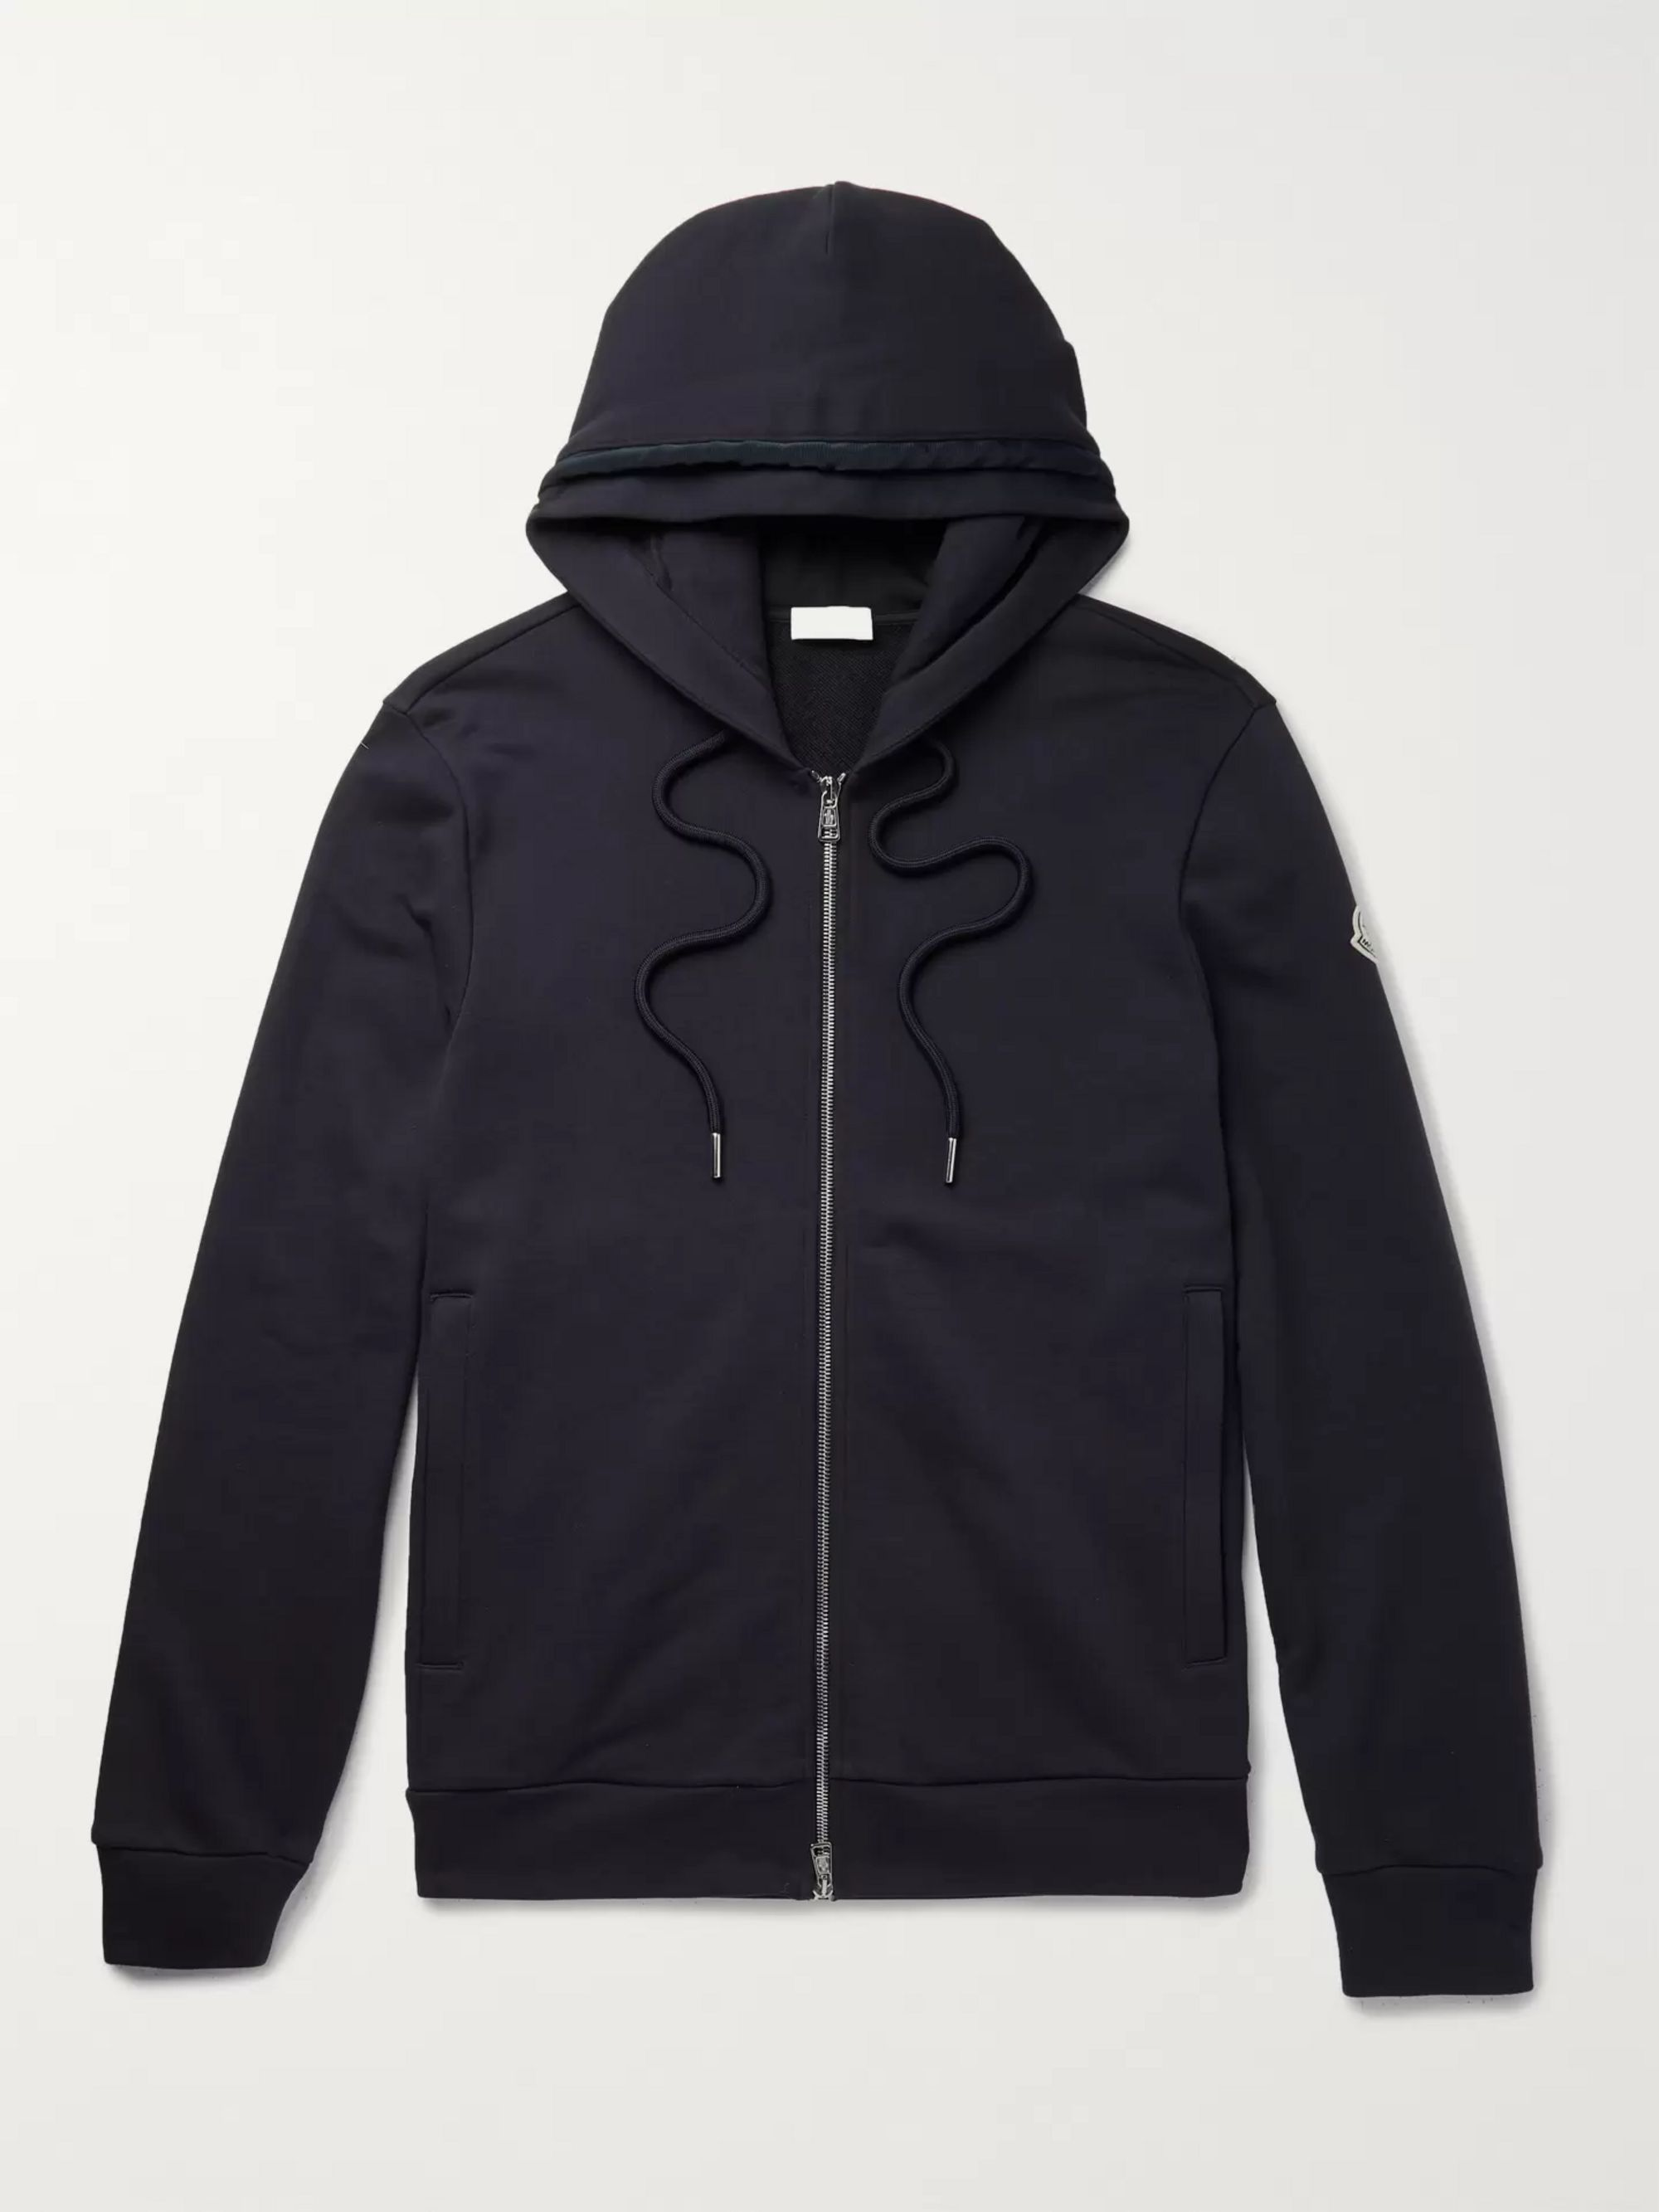 Loopback Cotton Jersey Zip Up Hoodie by Moncler